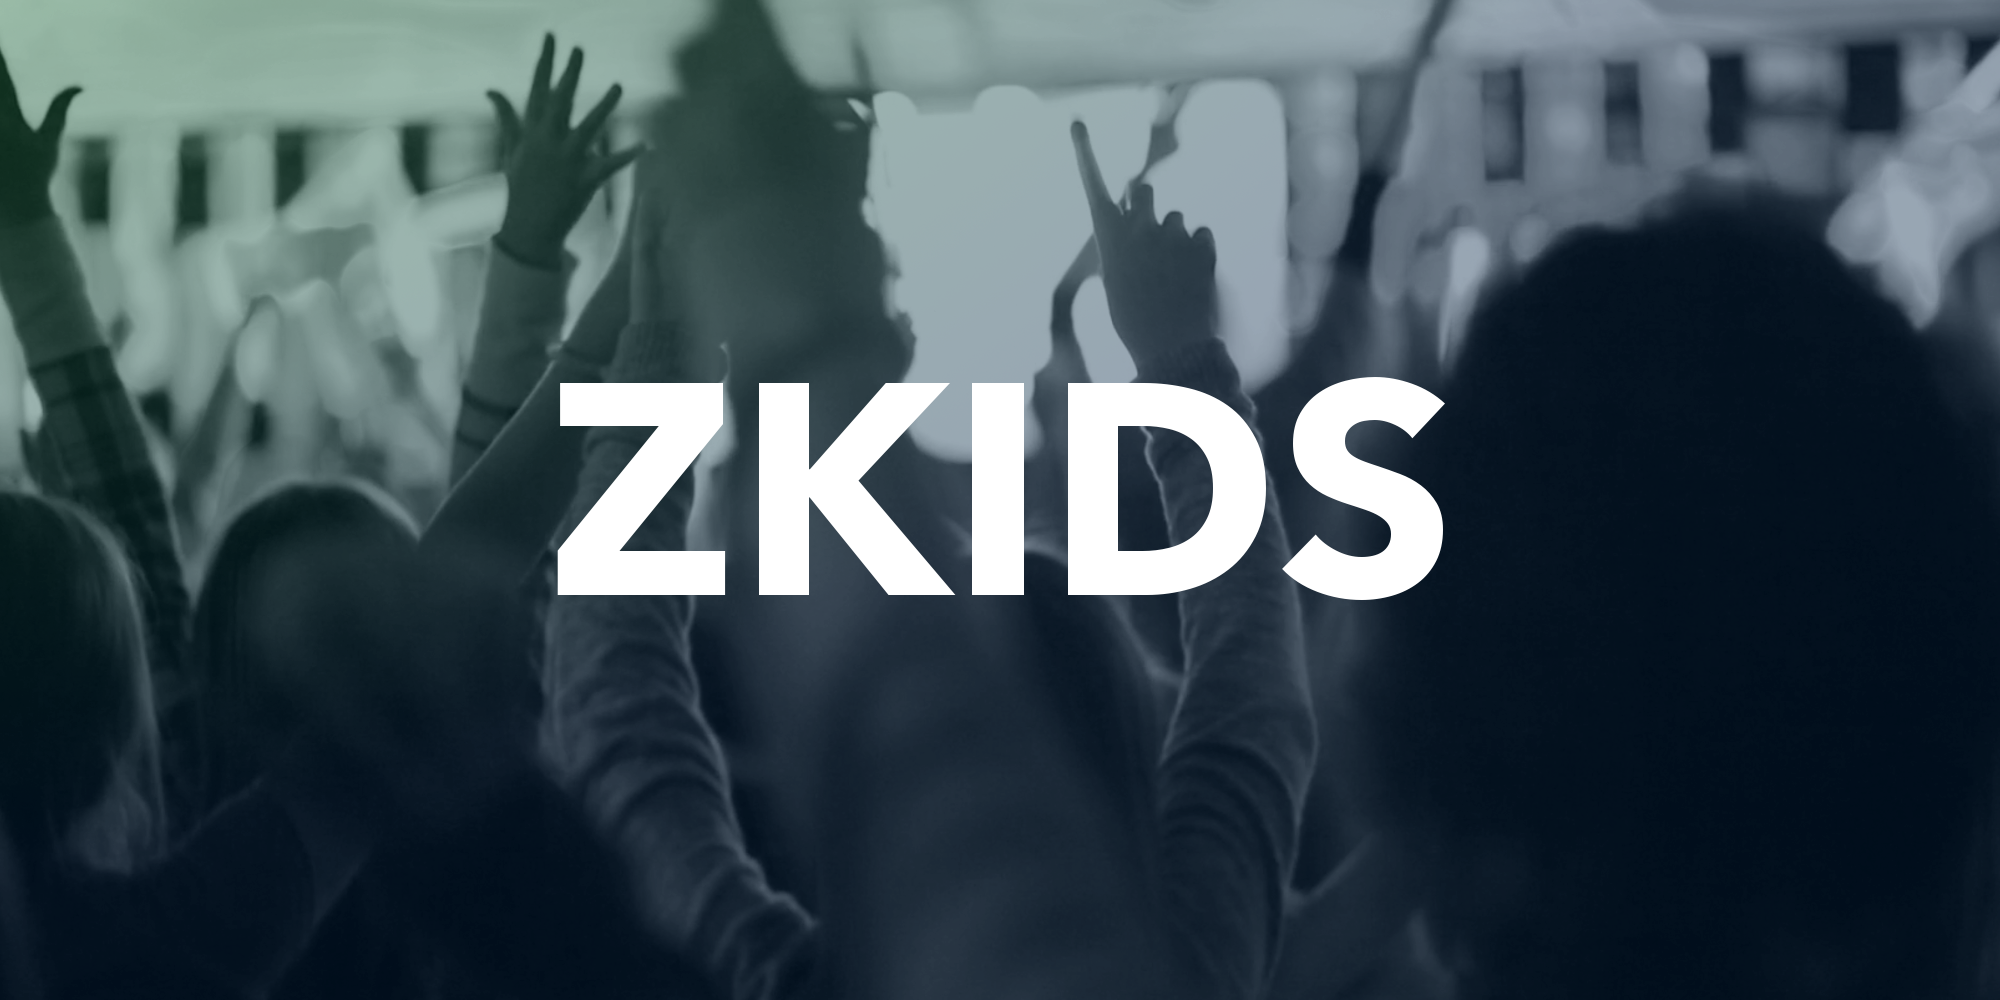 Website Button ZKIDS.png